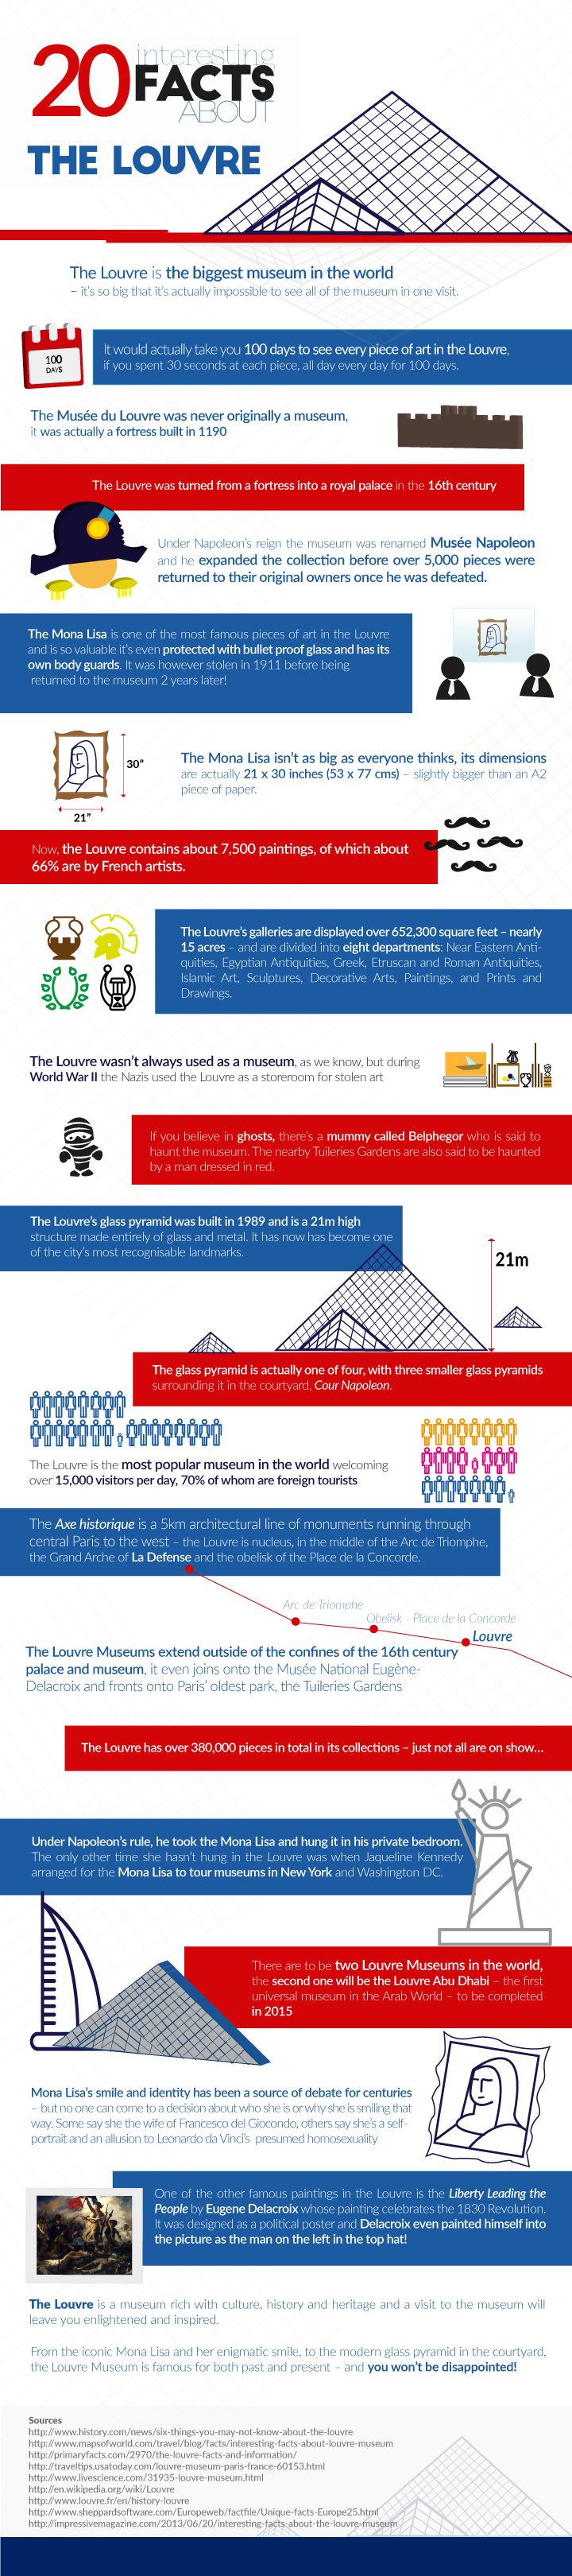 20 Interesting Facts About The Louvre ~ via Paris Weekender